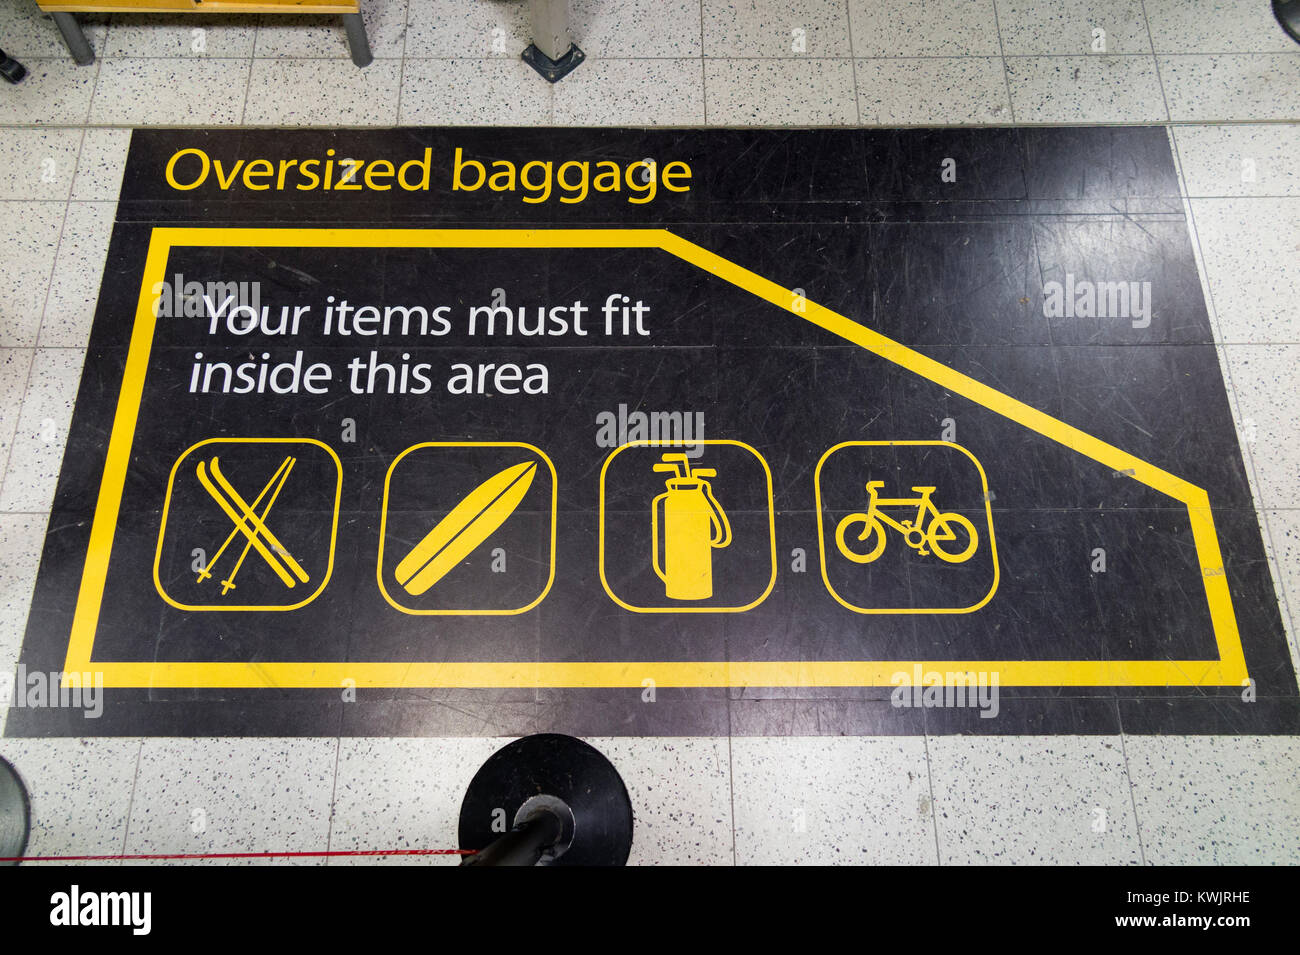 Size guide at oversized baggage drop off area zone at London Gatwick airport, for items of passenger luggage which - Stock Image